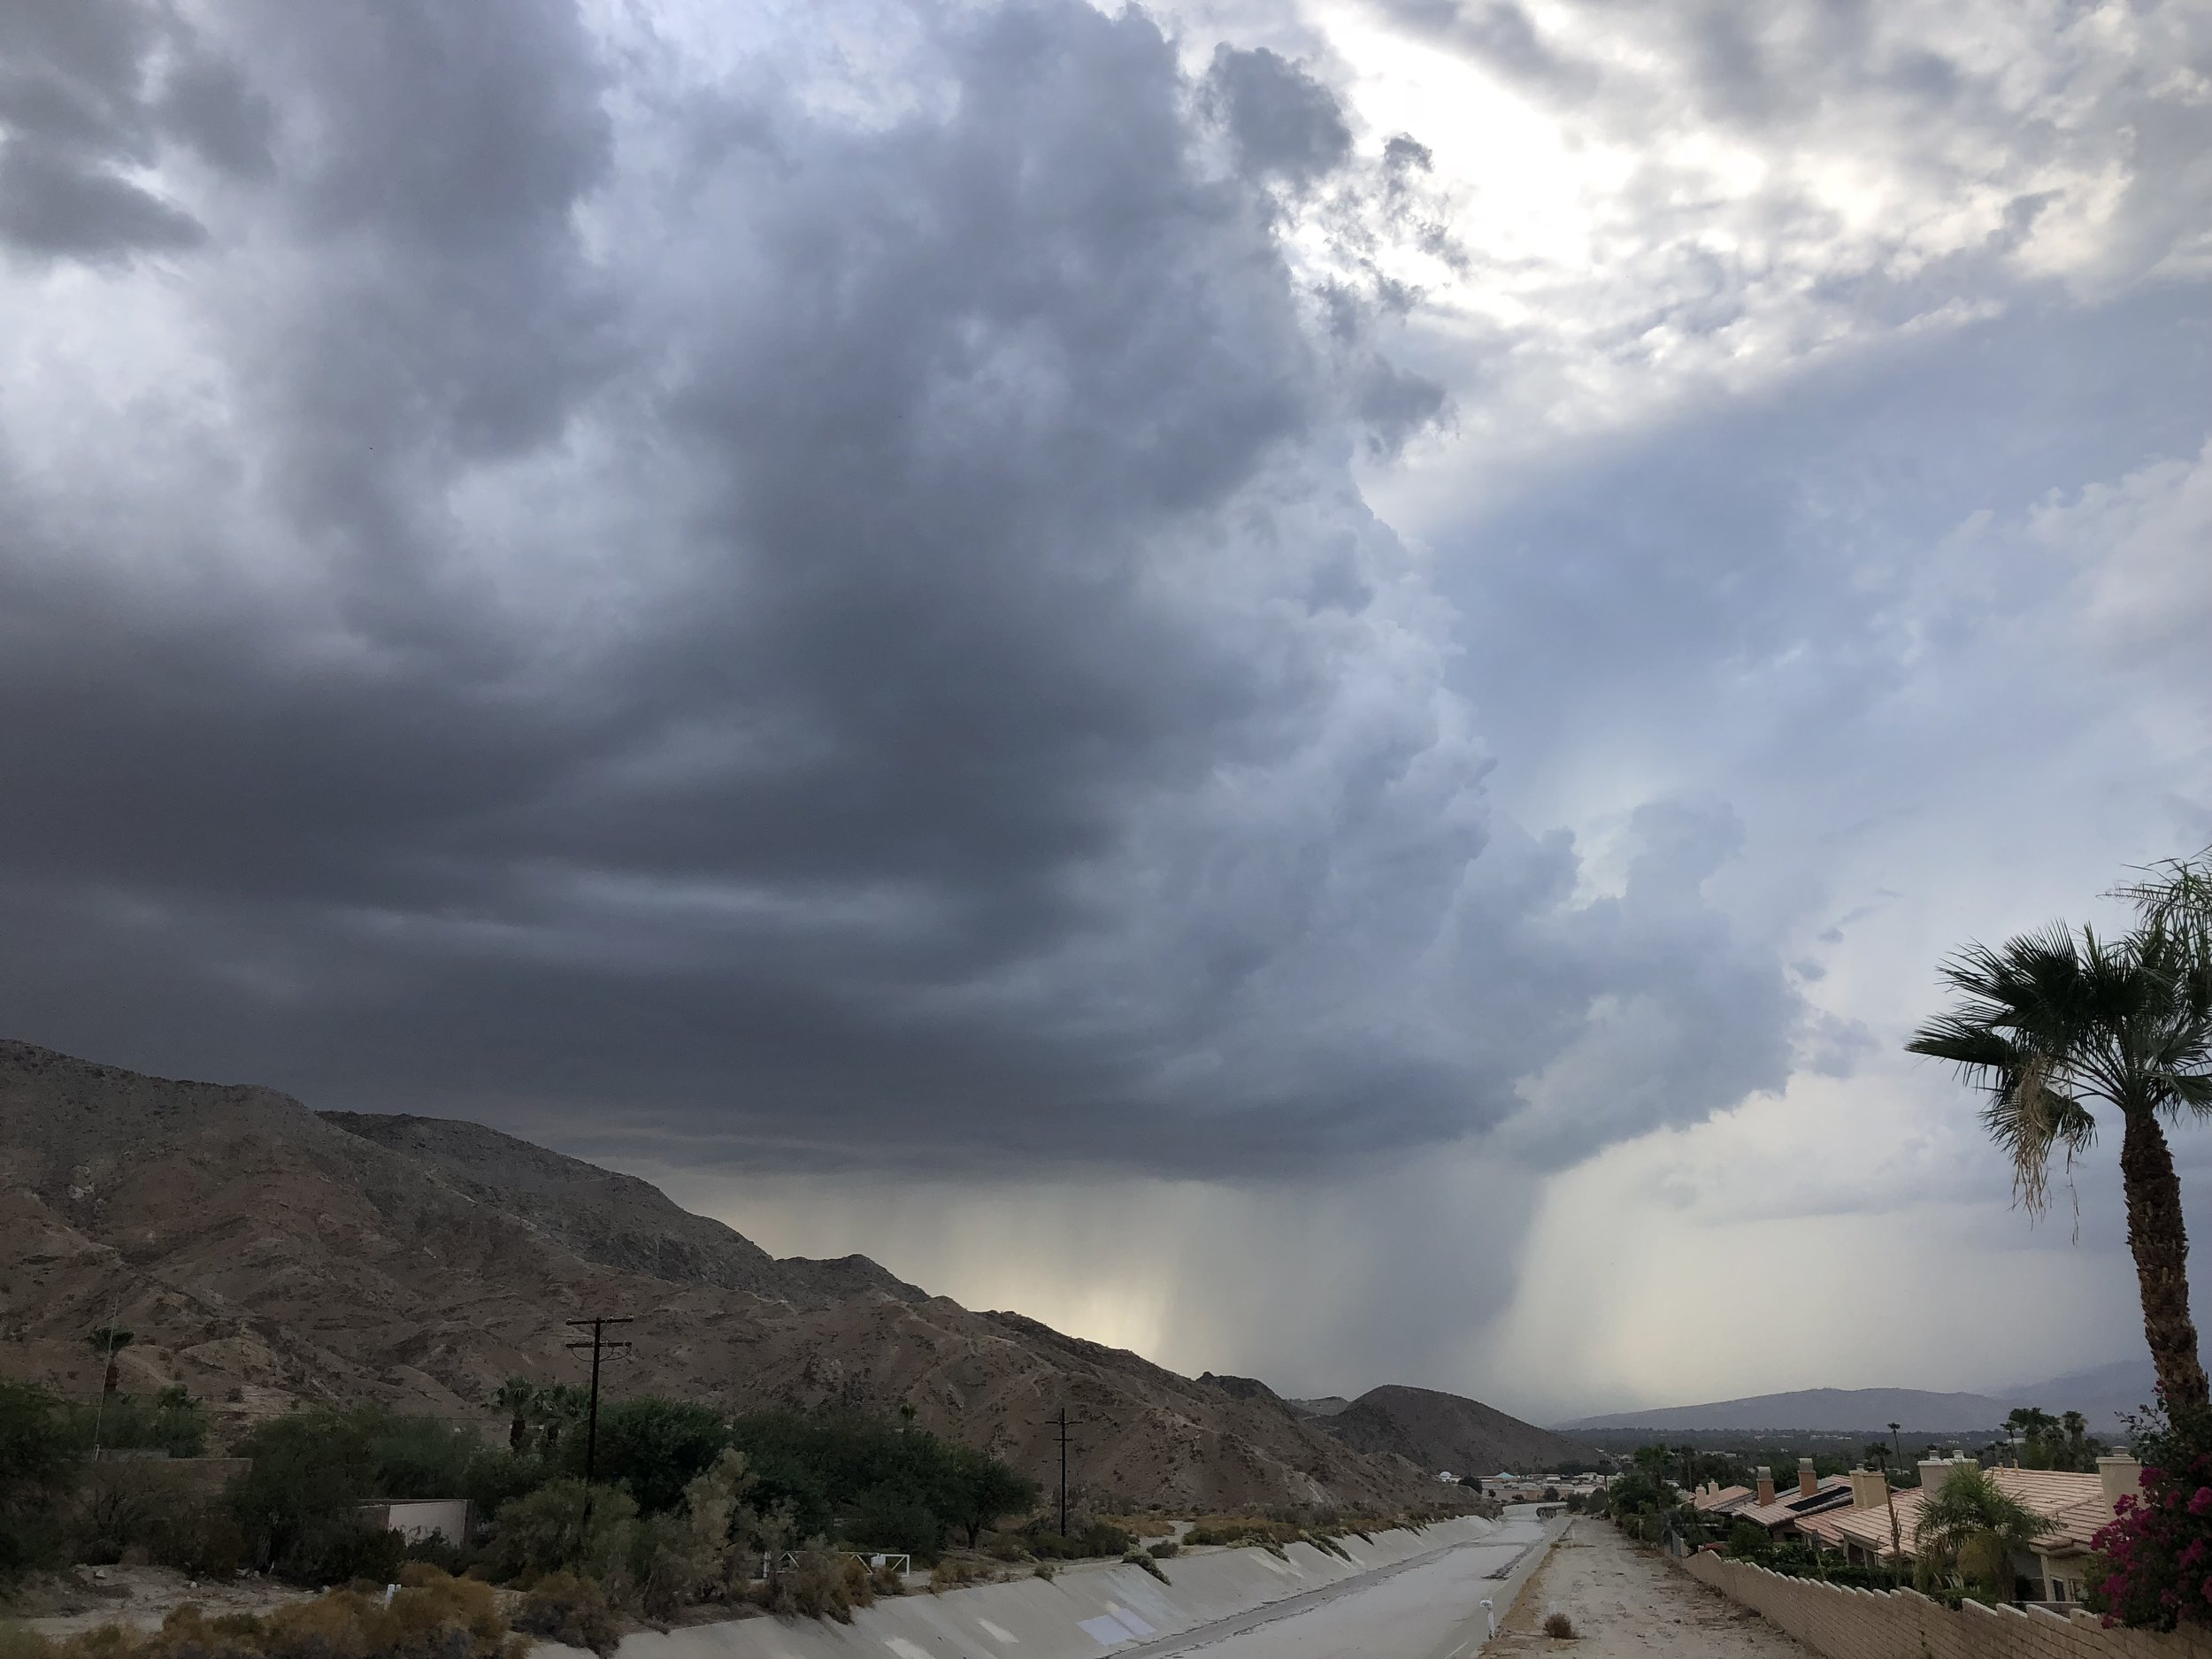 Storm clouds from earlier July when 1.11 inch of rain fell in Palm Springs.